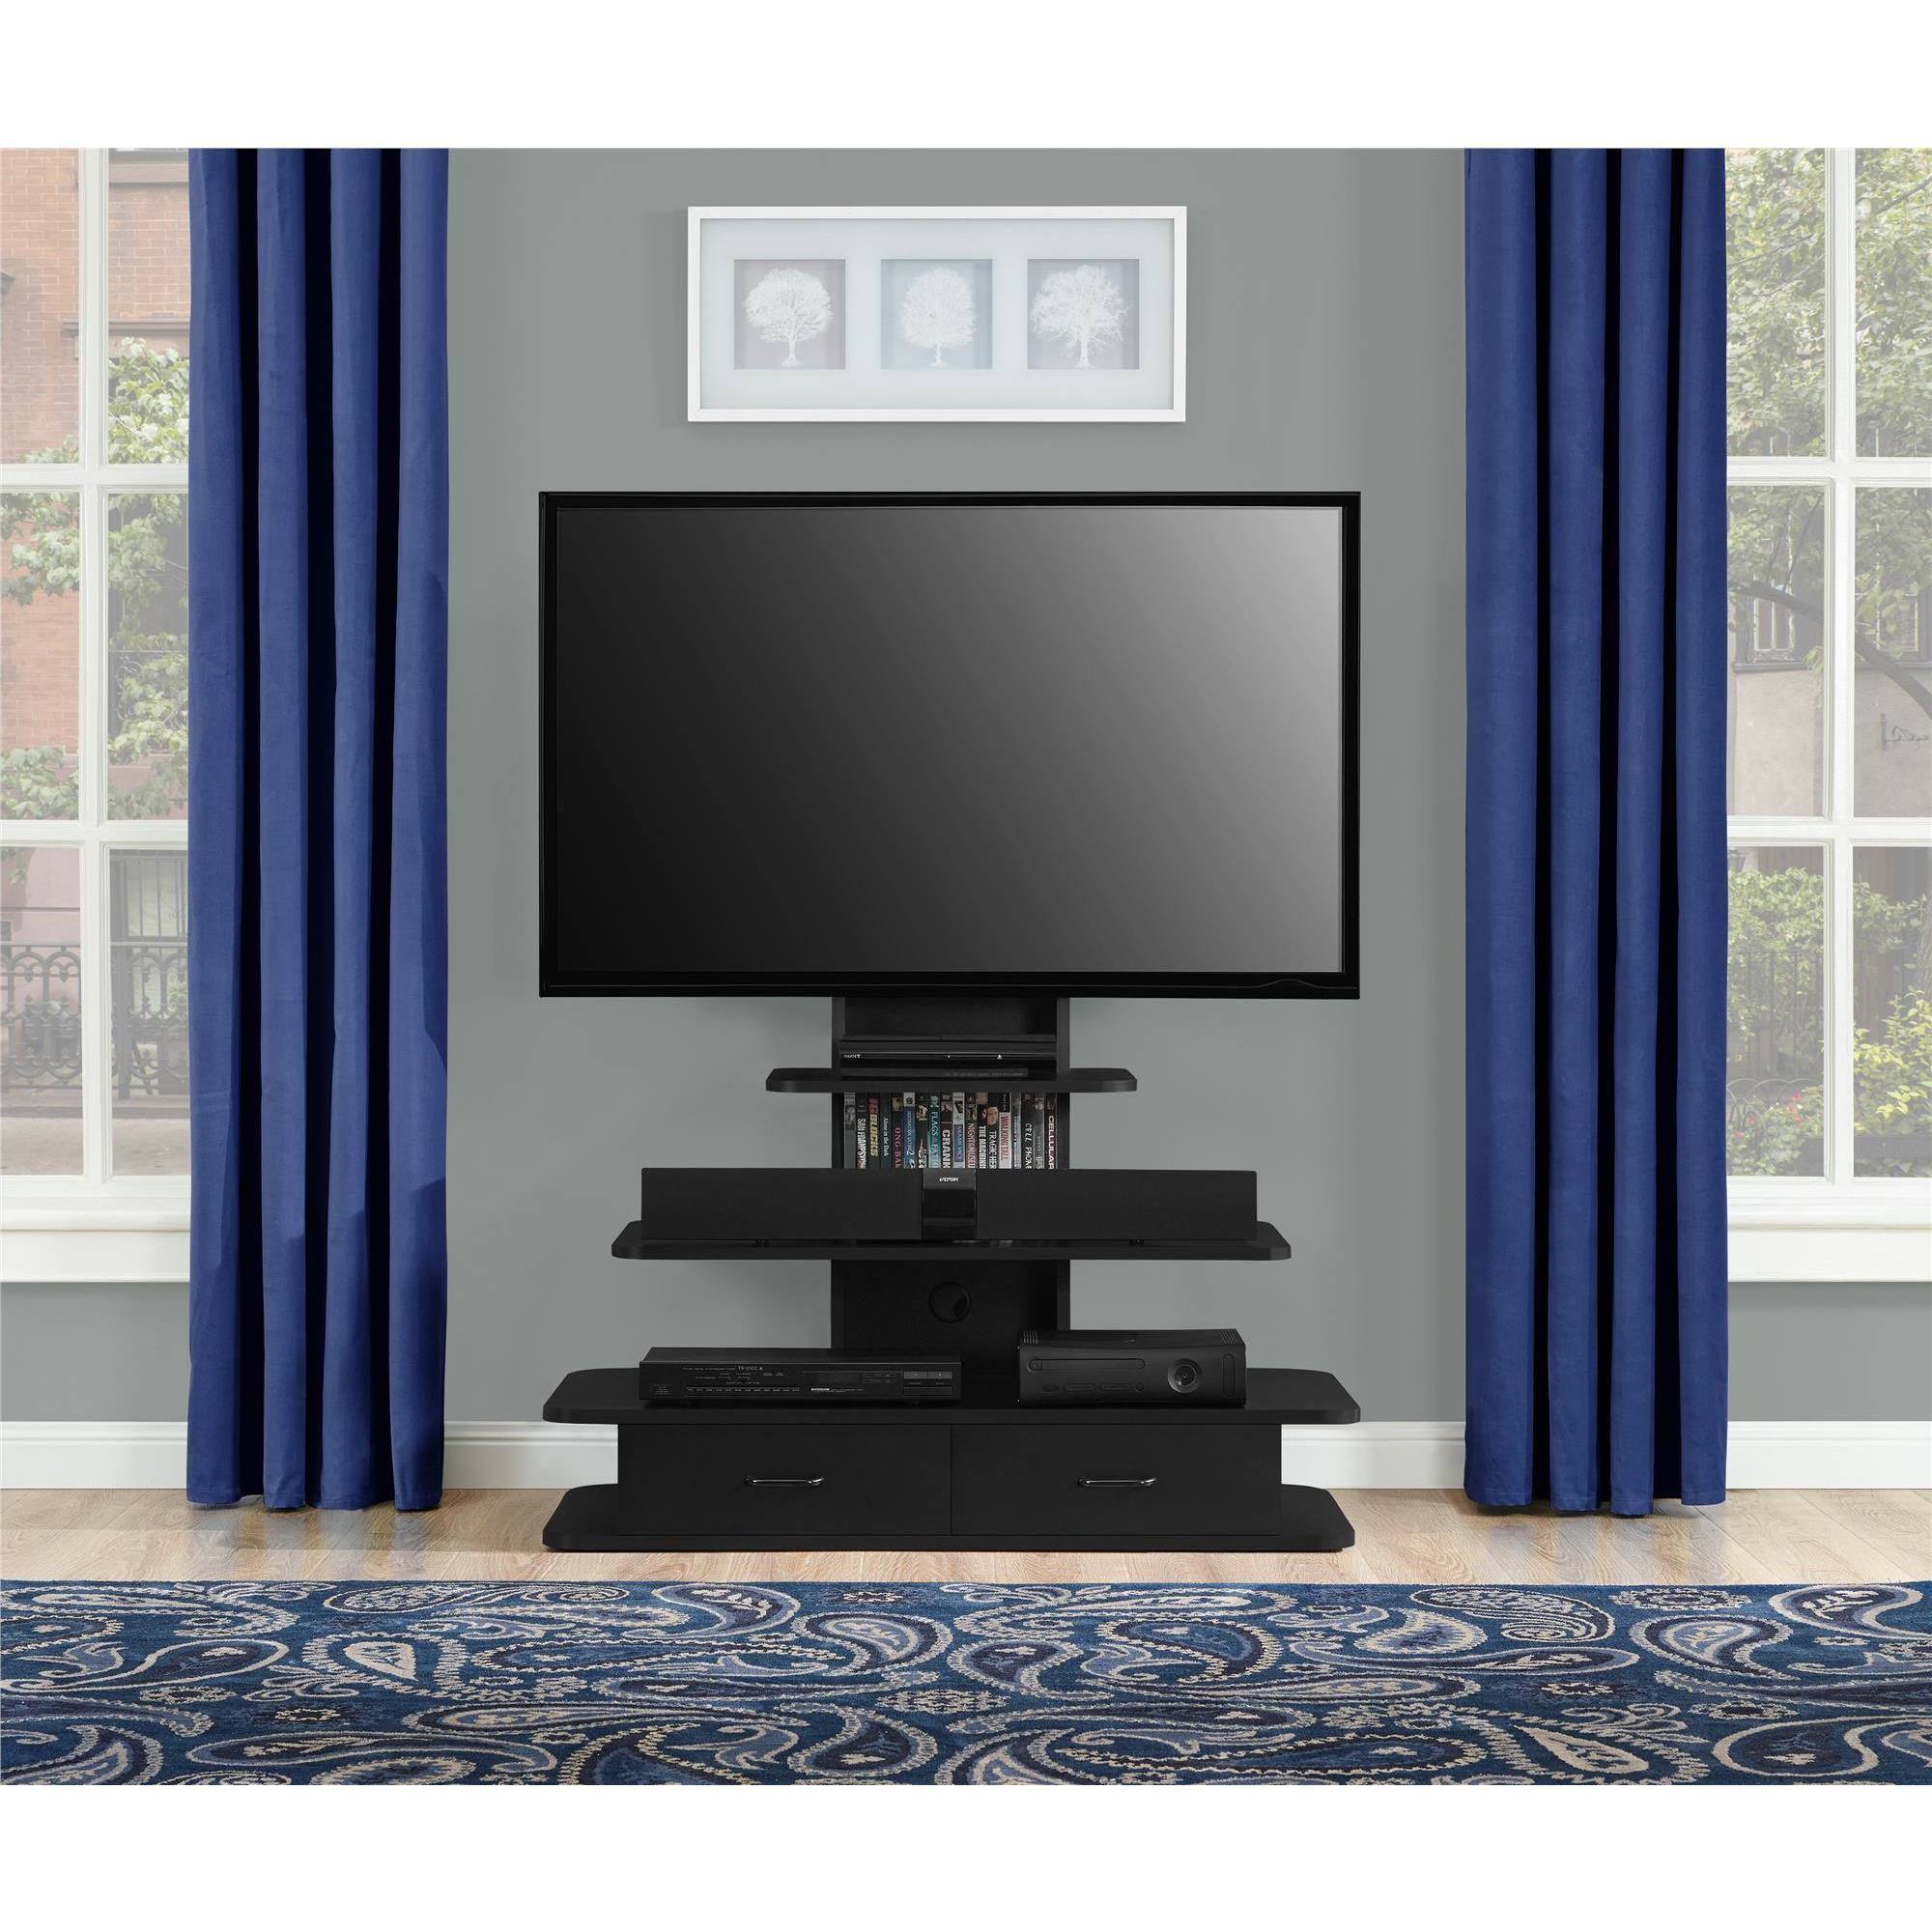 Shop Porch Den Bauwans 70 Inch Tv Stand With Mount Free Shipping